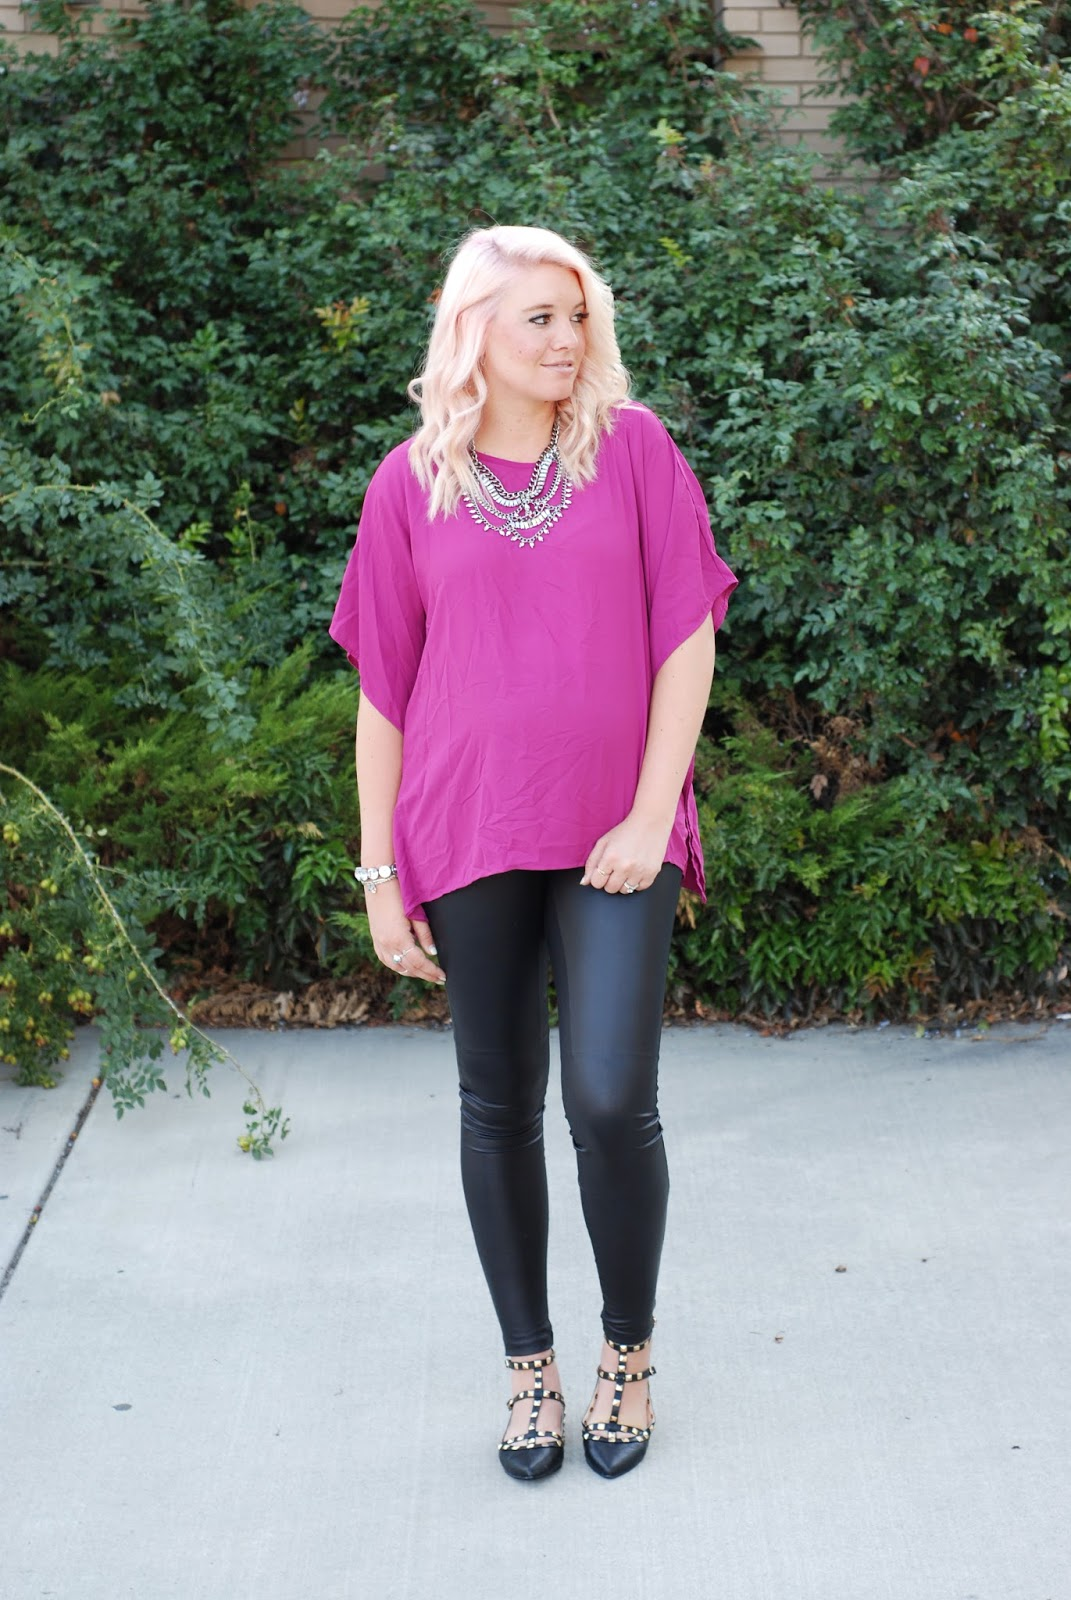 Heritwine Maternity, Leather Leggings, Studded Flats